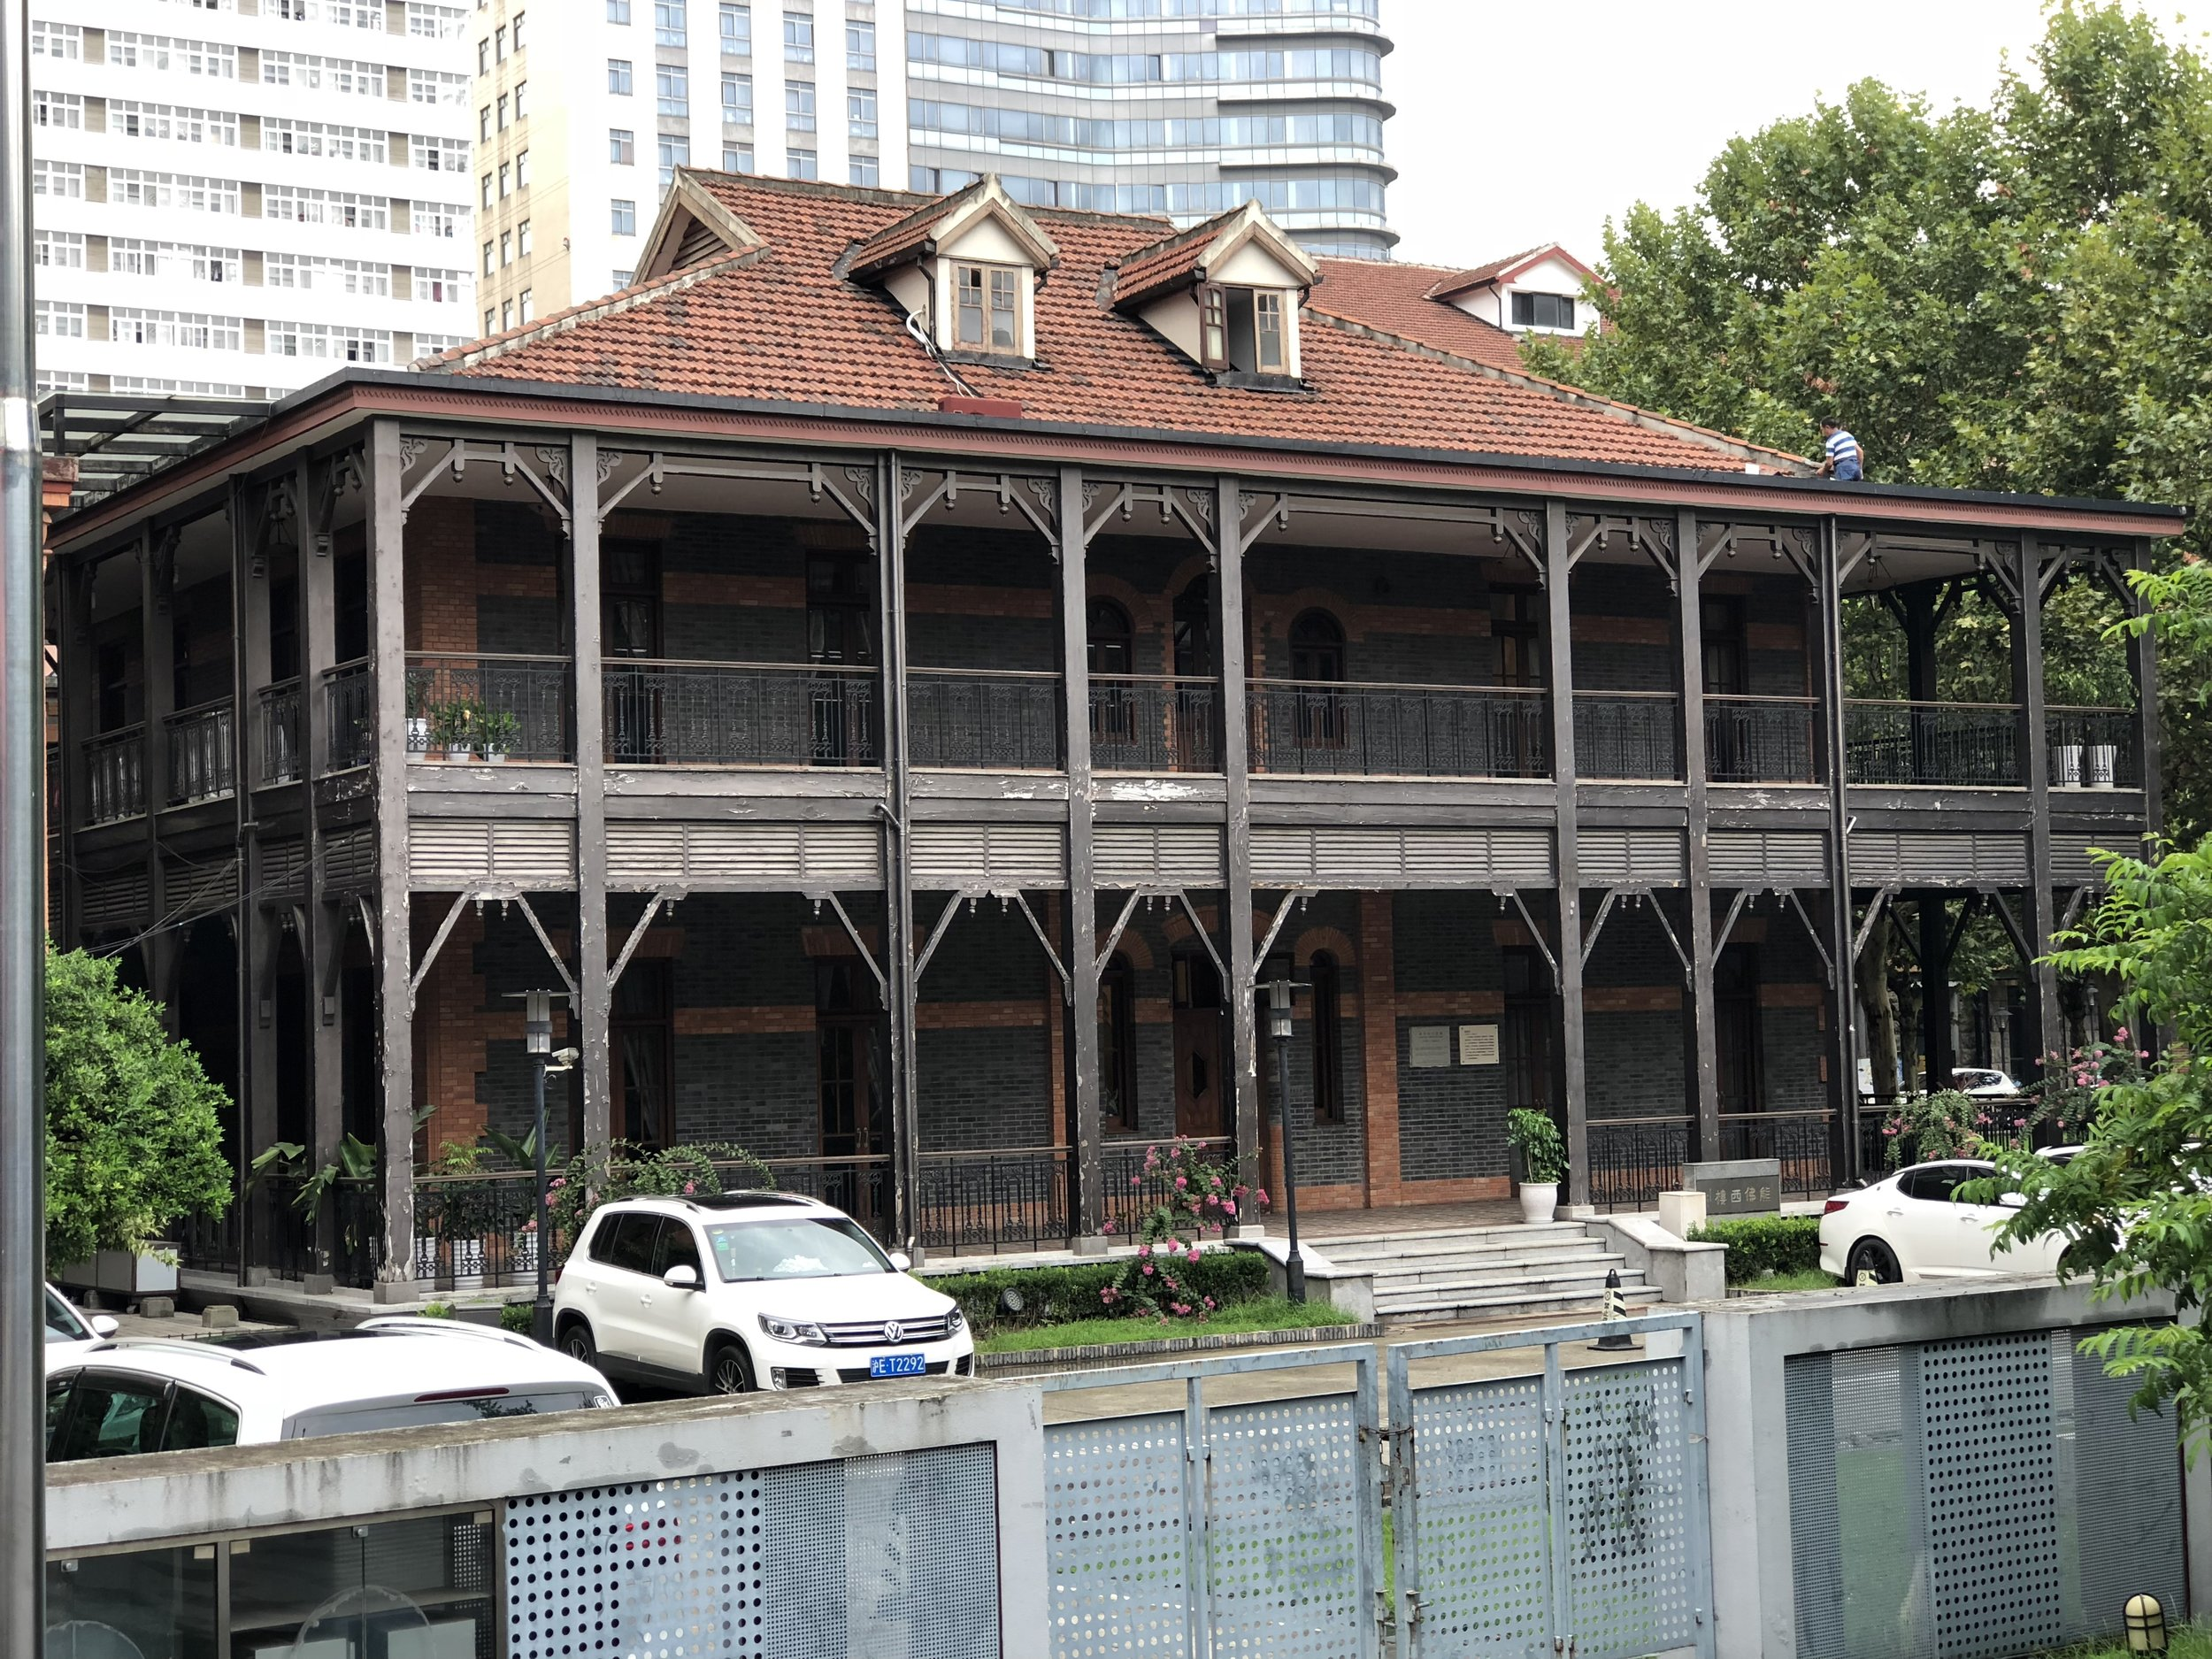 The original building that once housed the Del Monte night club in Shanghai, now part of the Shanghai Theater Academy and known as the Xiong Foxi Building (there is no mention of the Del Monte on the plaque that describes the history of the building)